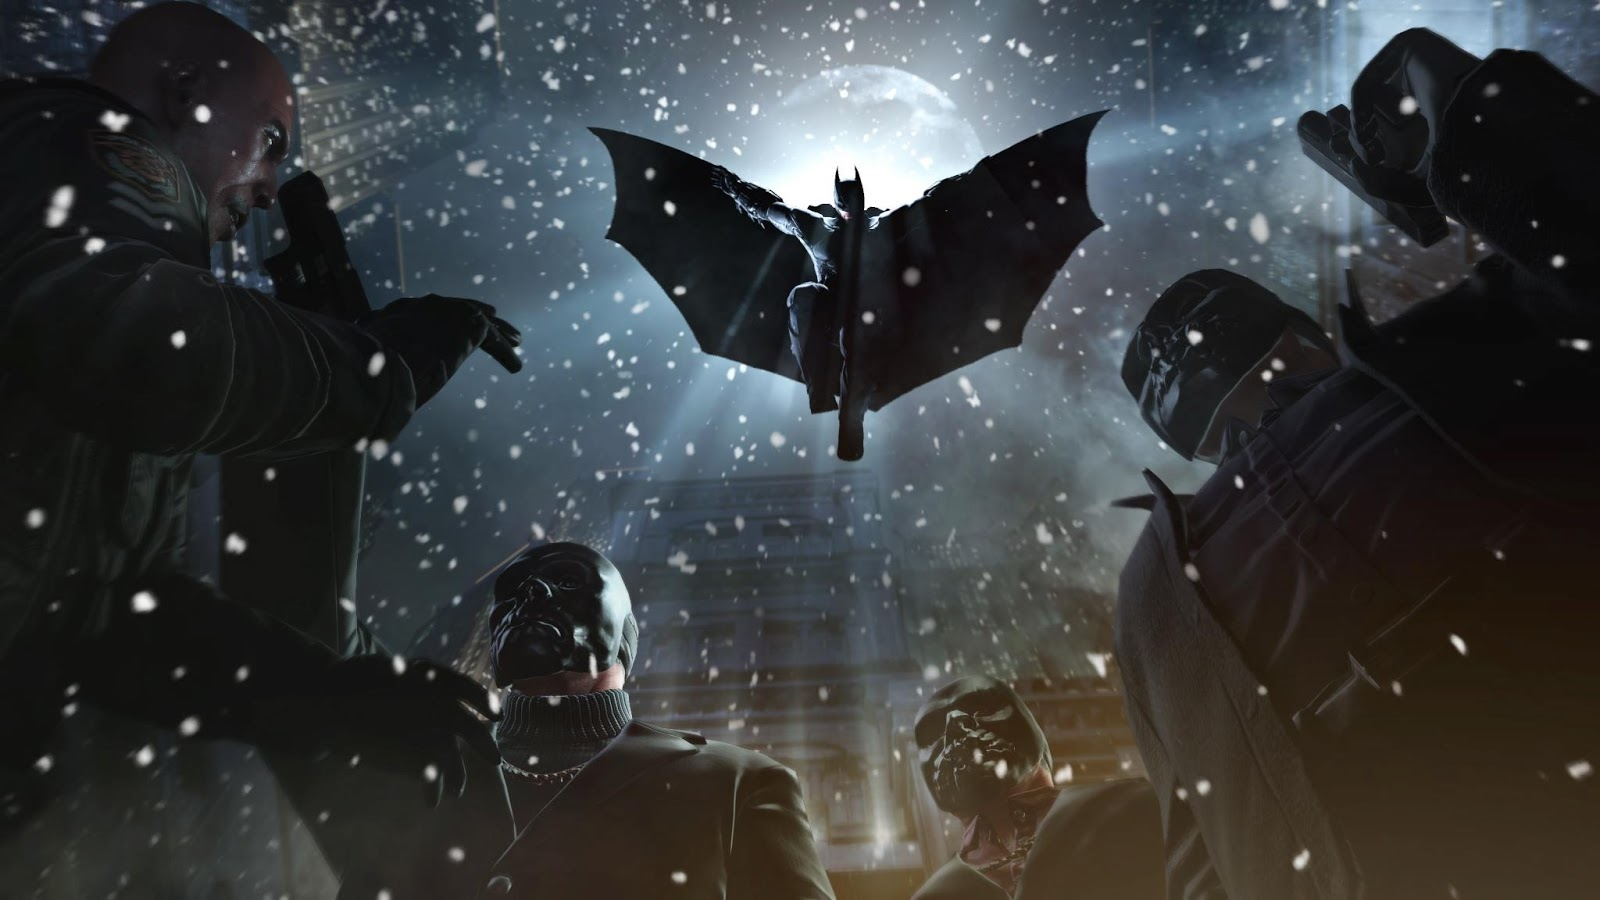 eve drone with Batman Arkham Origins Info About Story on Martyrs Memorial Monument Inaugurated In Umm Al Qaiwain furthermore Sat 17 Nov Big Picture Activism For An Economics Of Happines 49595 also Eve Online Ship likewise Soe Reinforcements And Ui Fine Tuning likewise Military Land Drones.